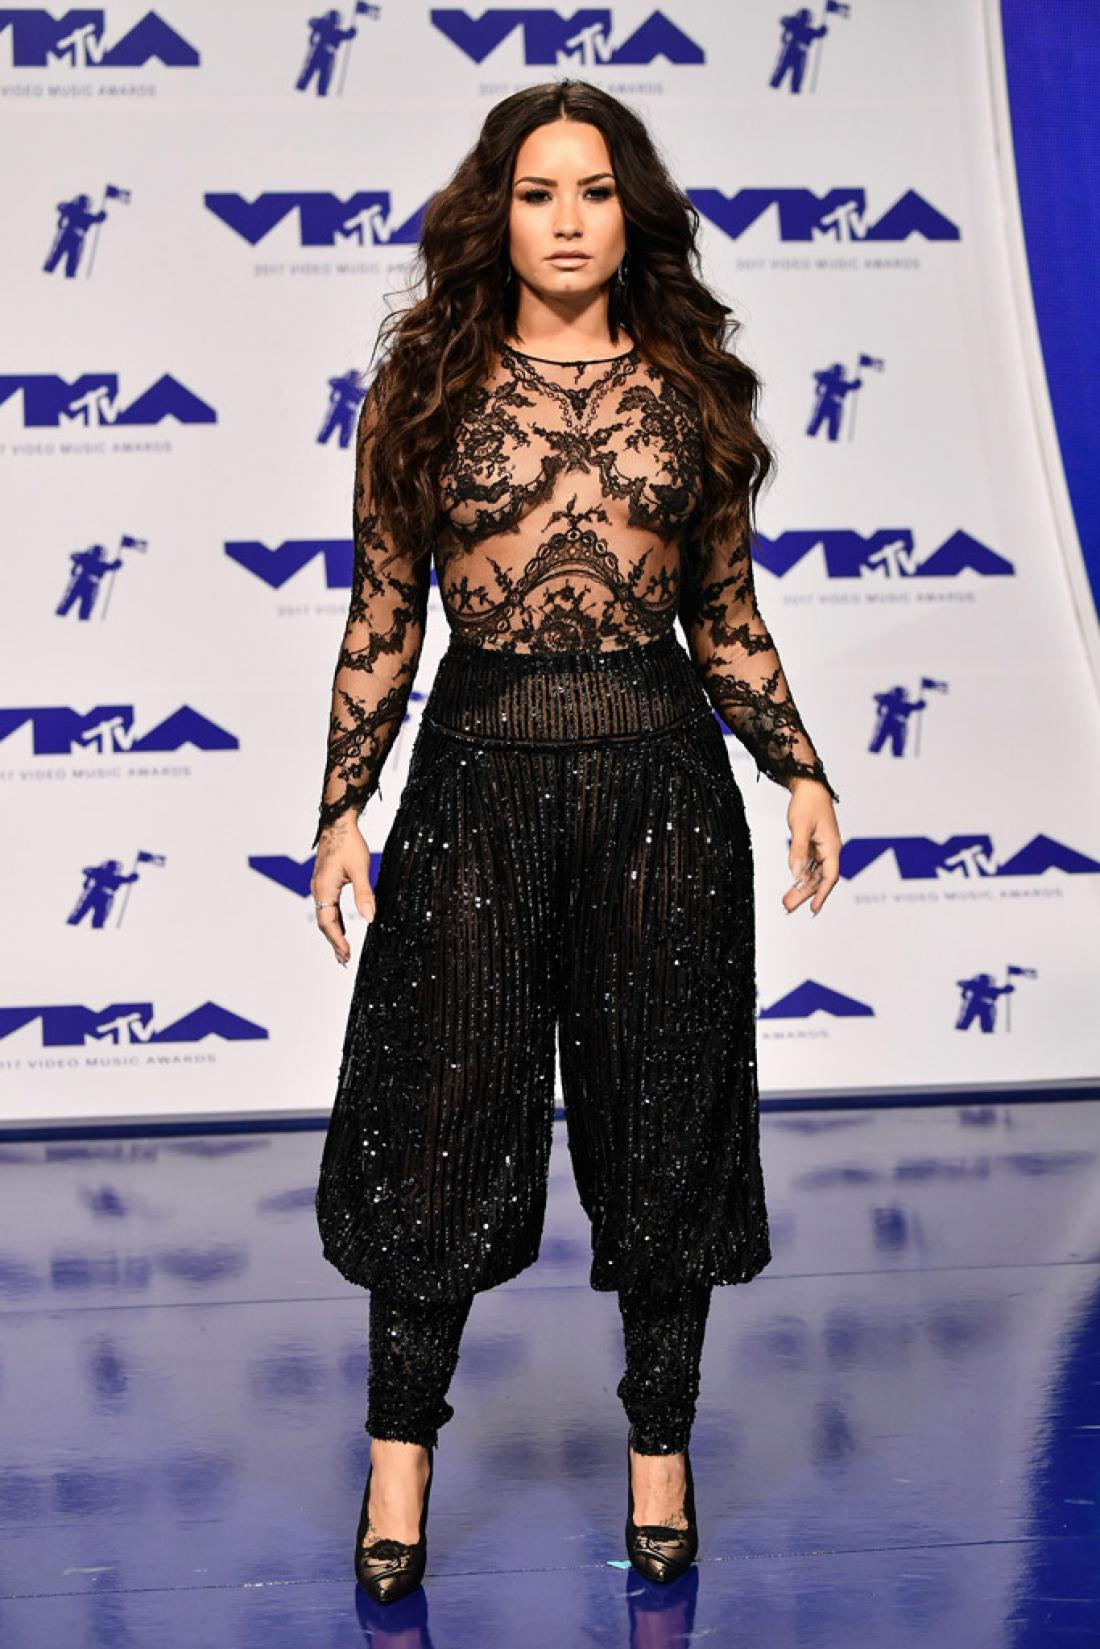 mtv-vma-2017-red-carpet-01-demi-2.jpg